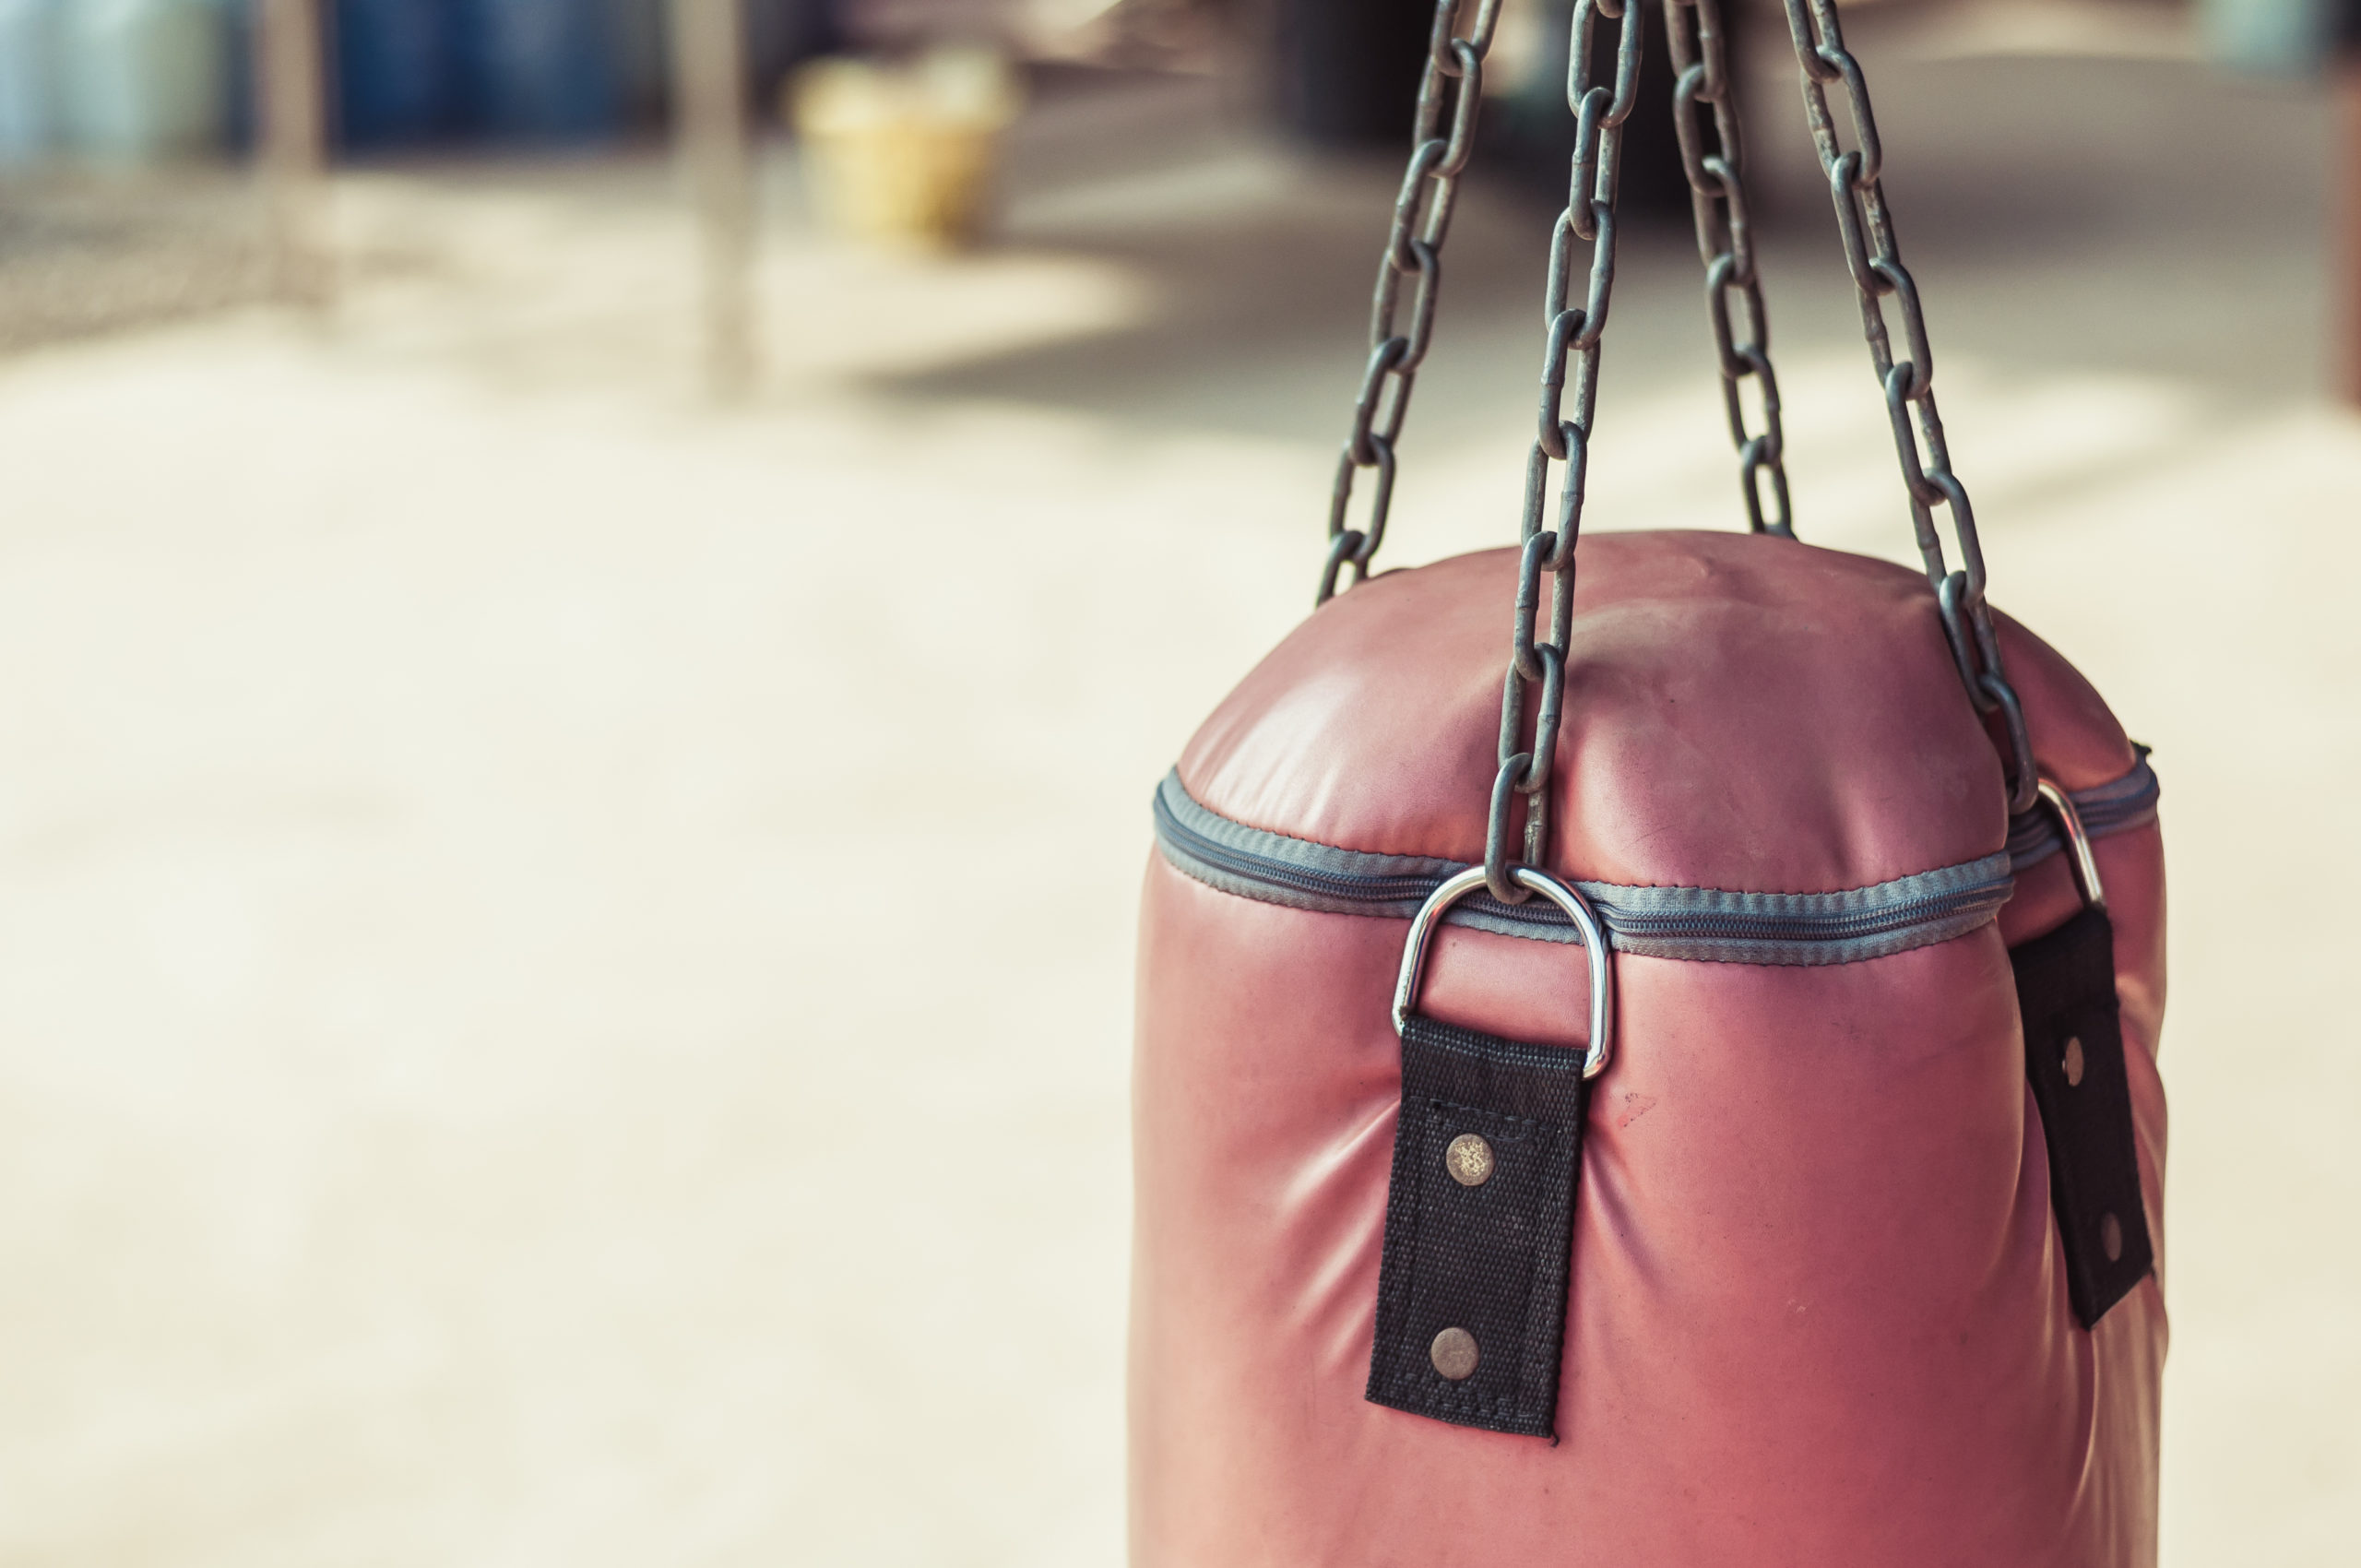 punchingbag-box-health_601104374